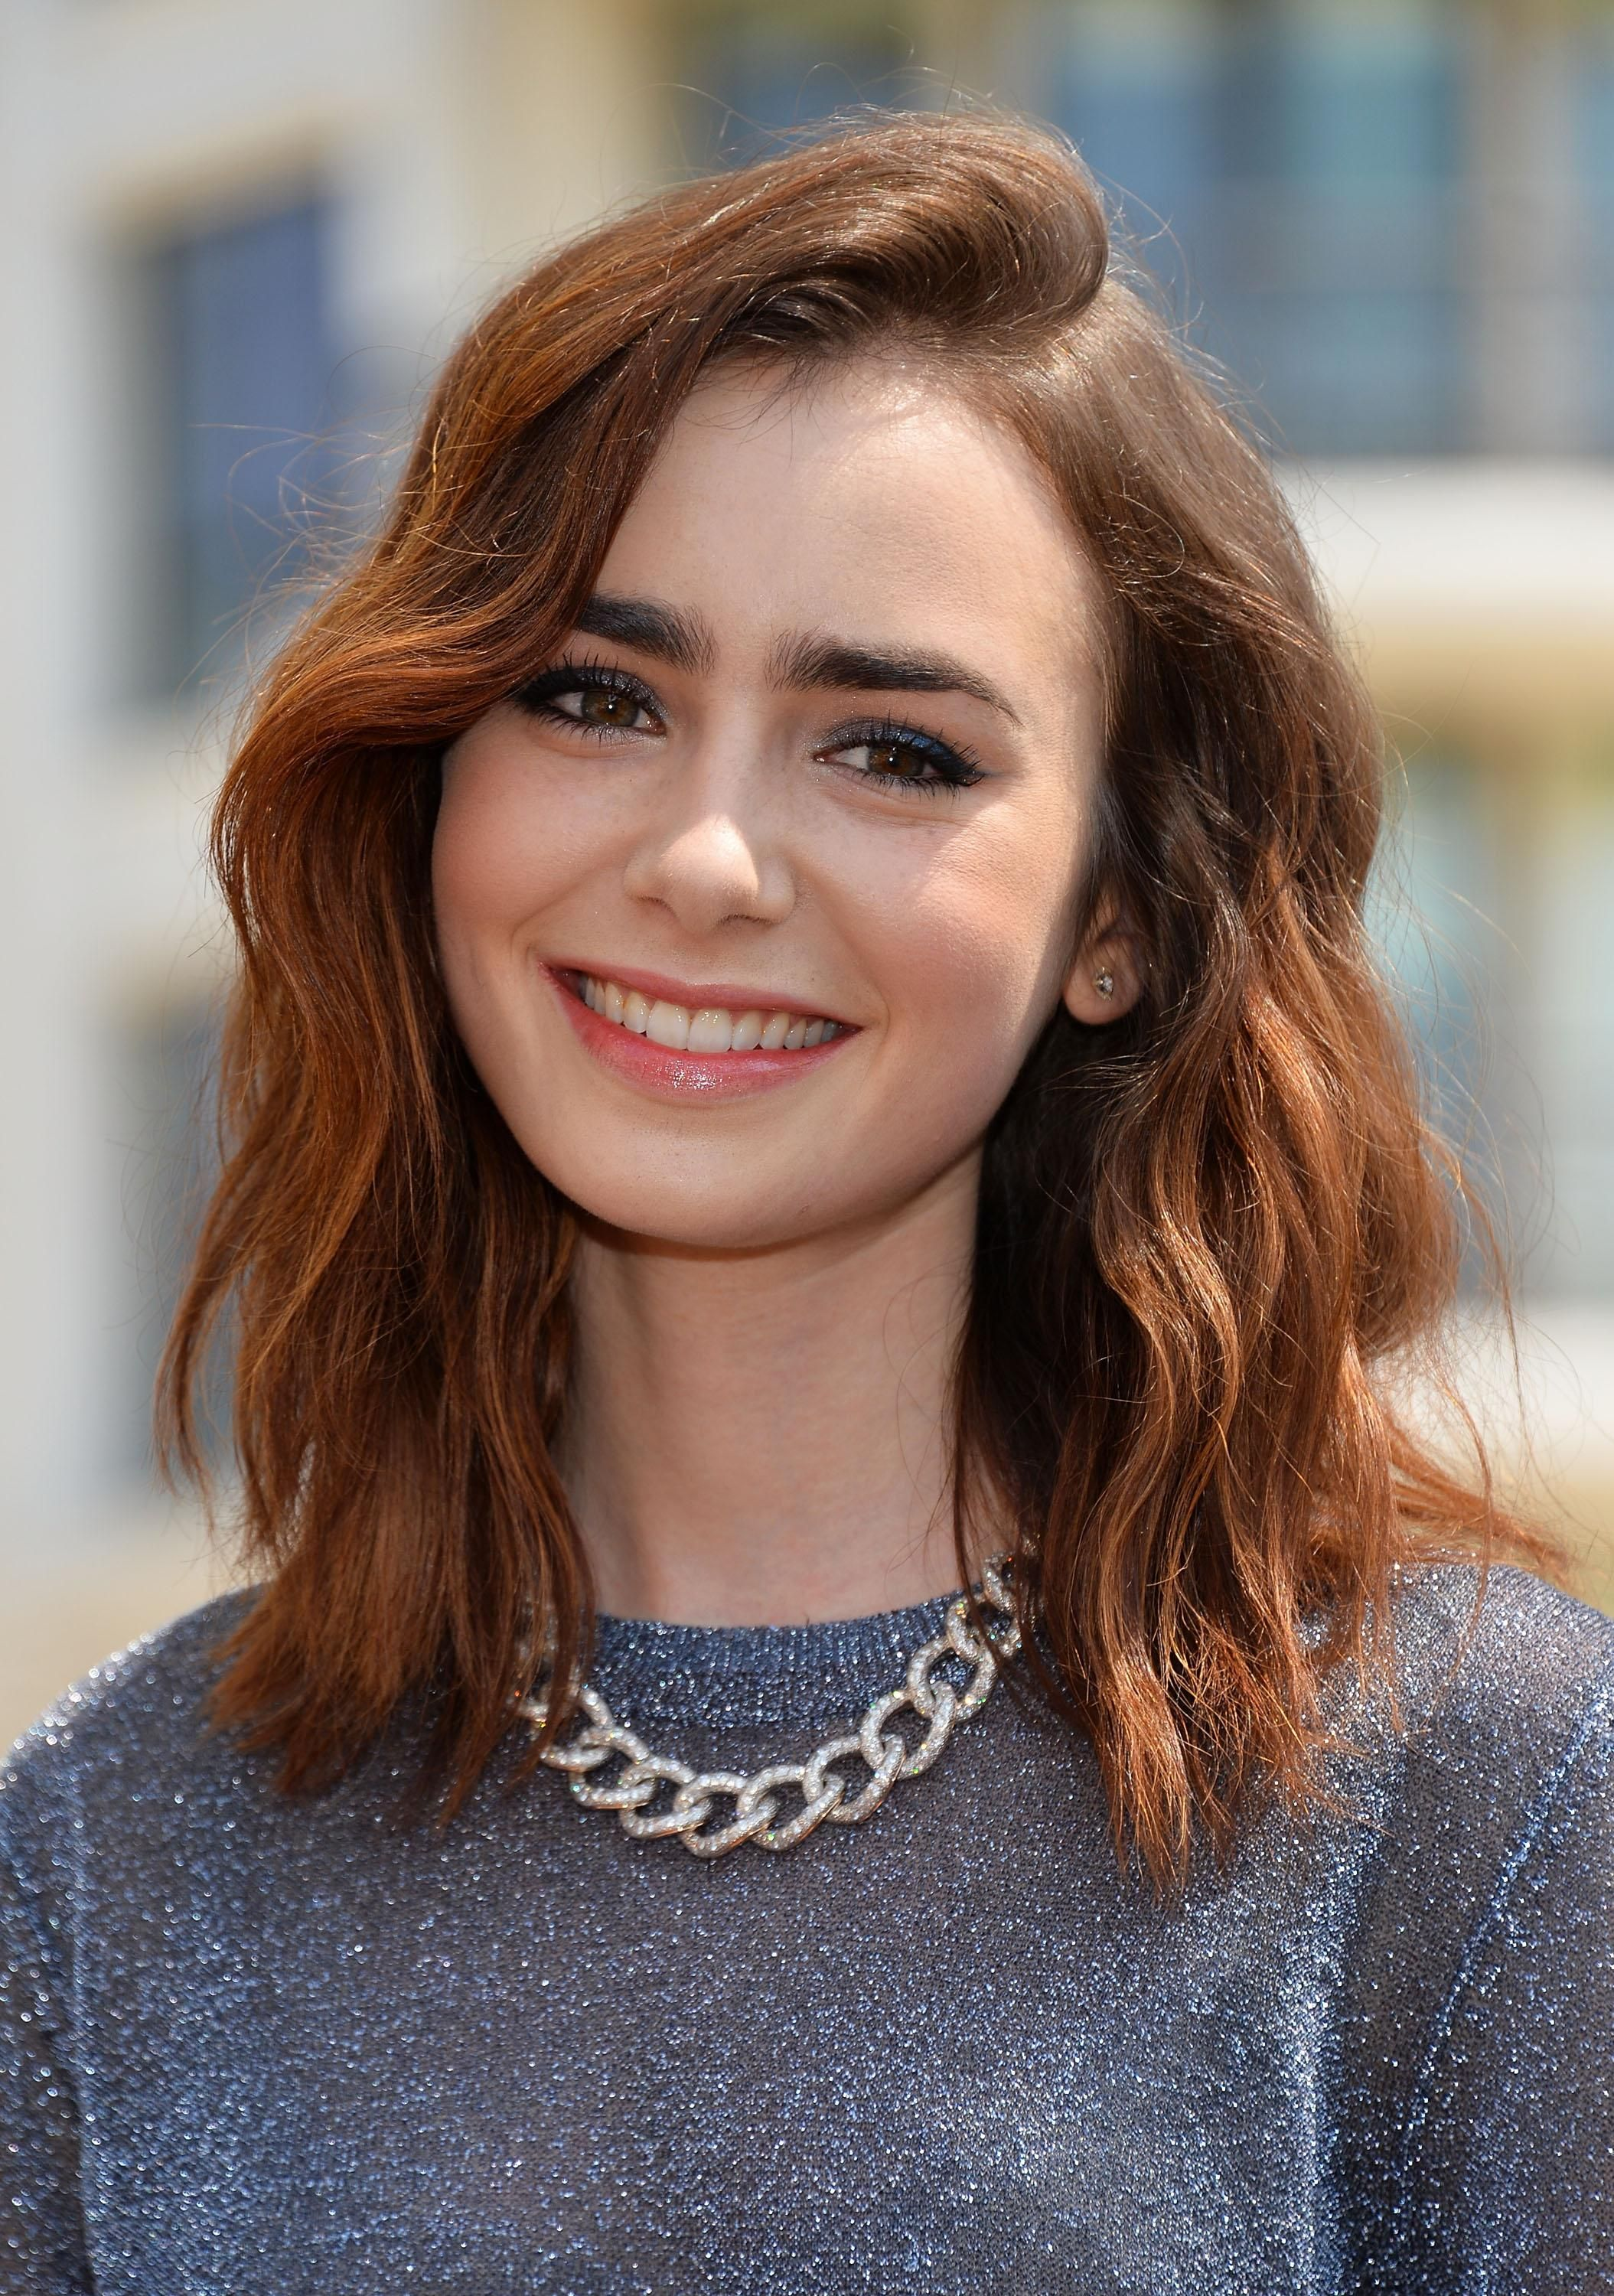 From lily collins hairstyles 2017 best haircuts and hair colors - Here S Proof That Lily Collins Can Rock Every Single Hairstyle Auburn And Wavy